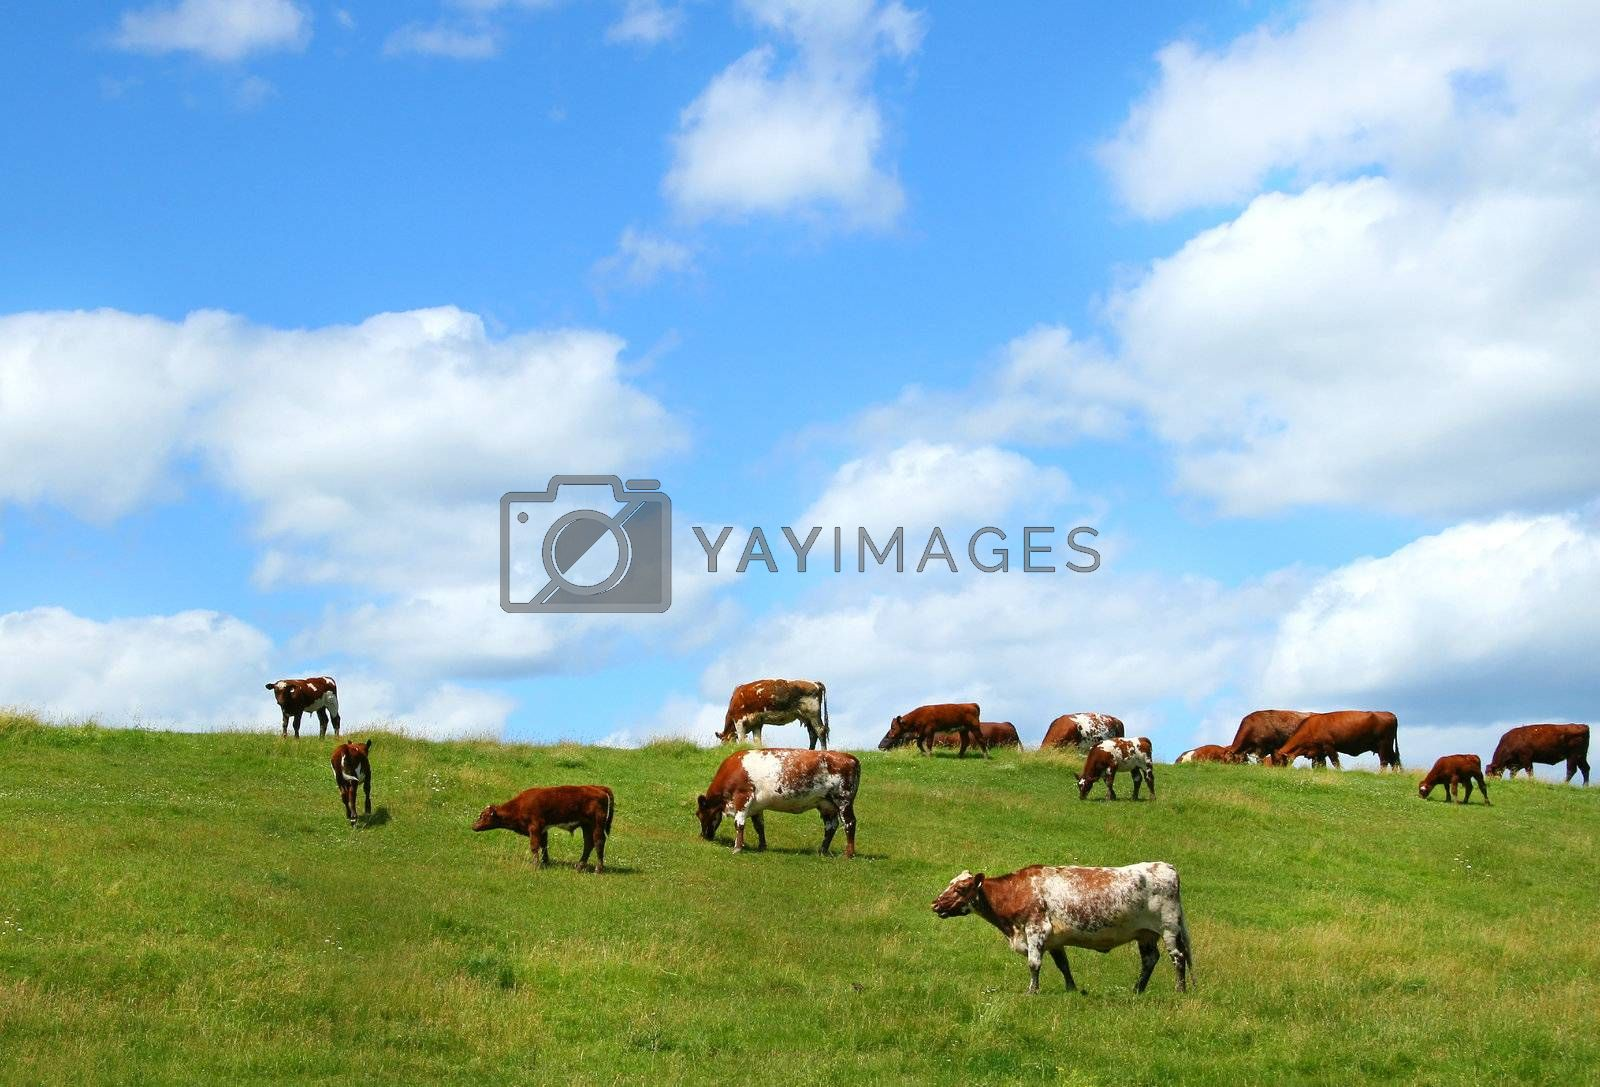 Cows grazing on the hill